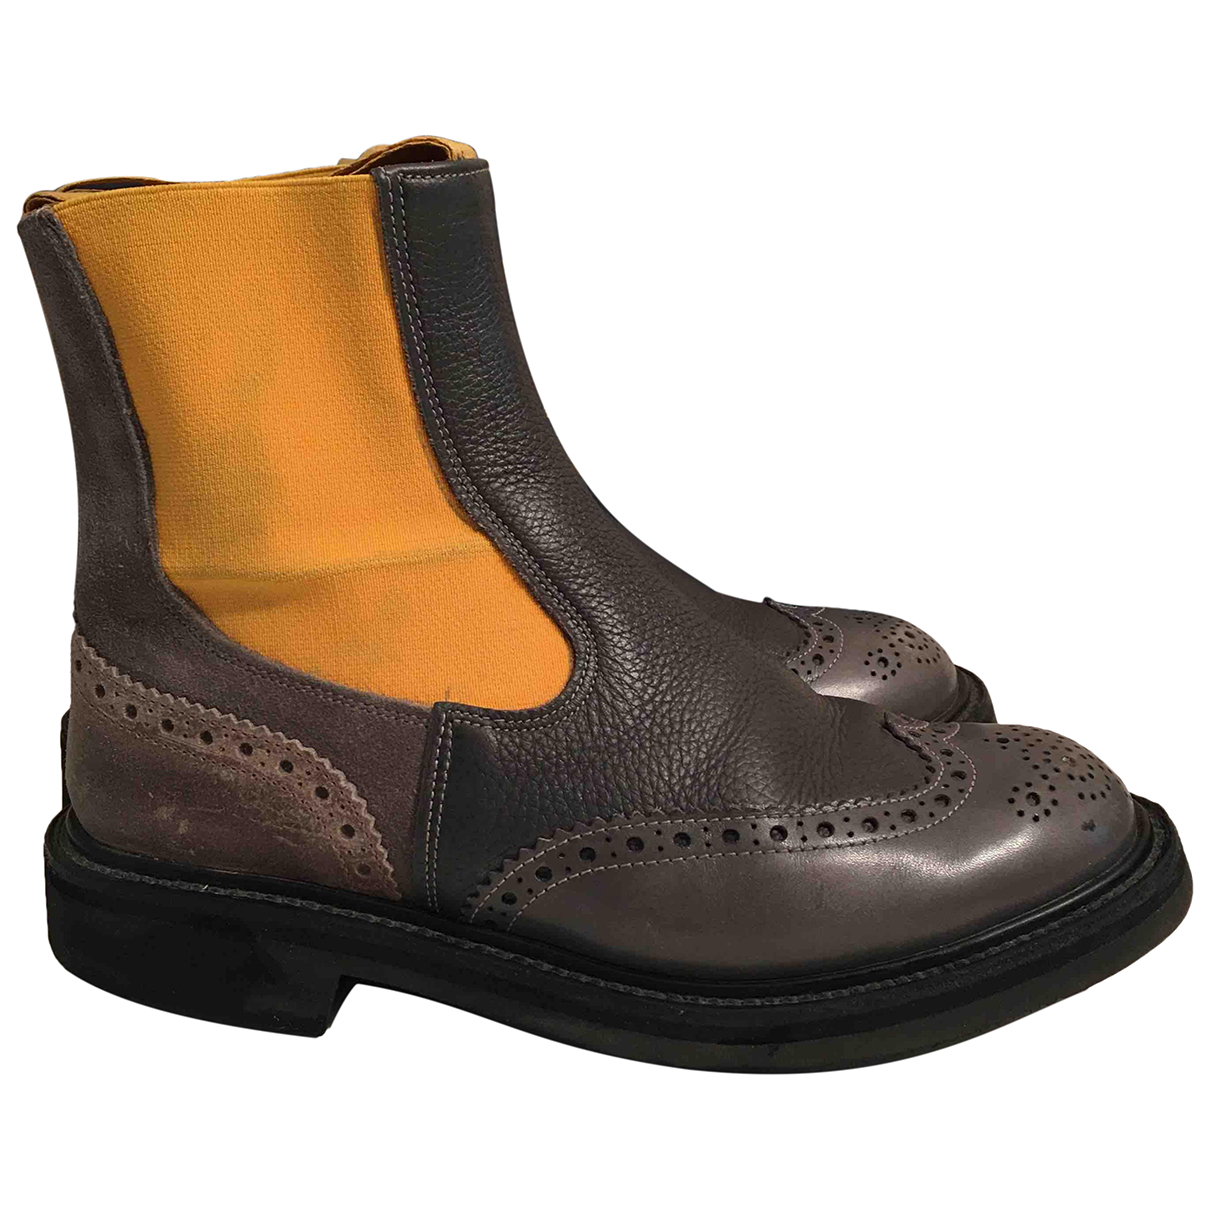 Trickers London \N Stiefeletten in  Bunt Leder